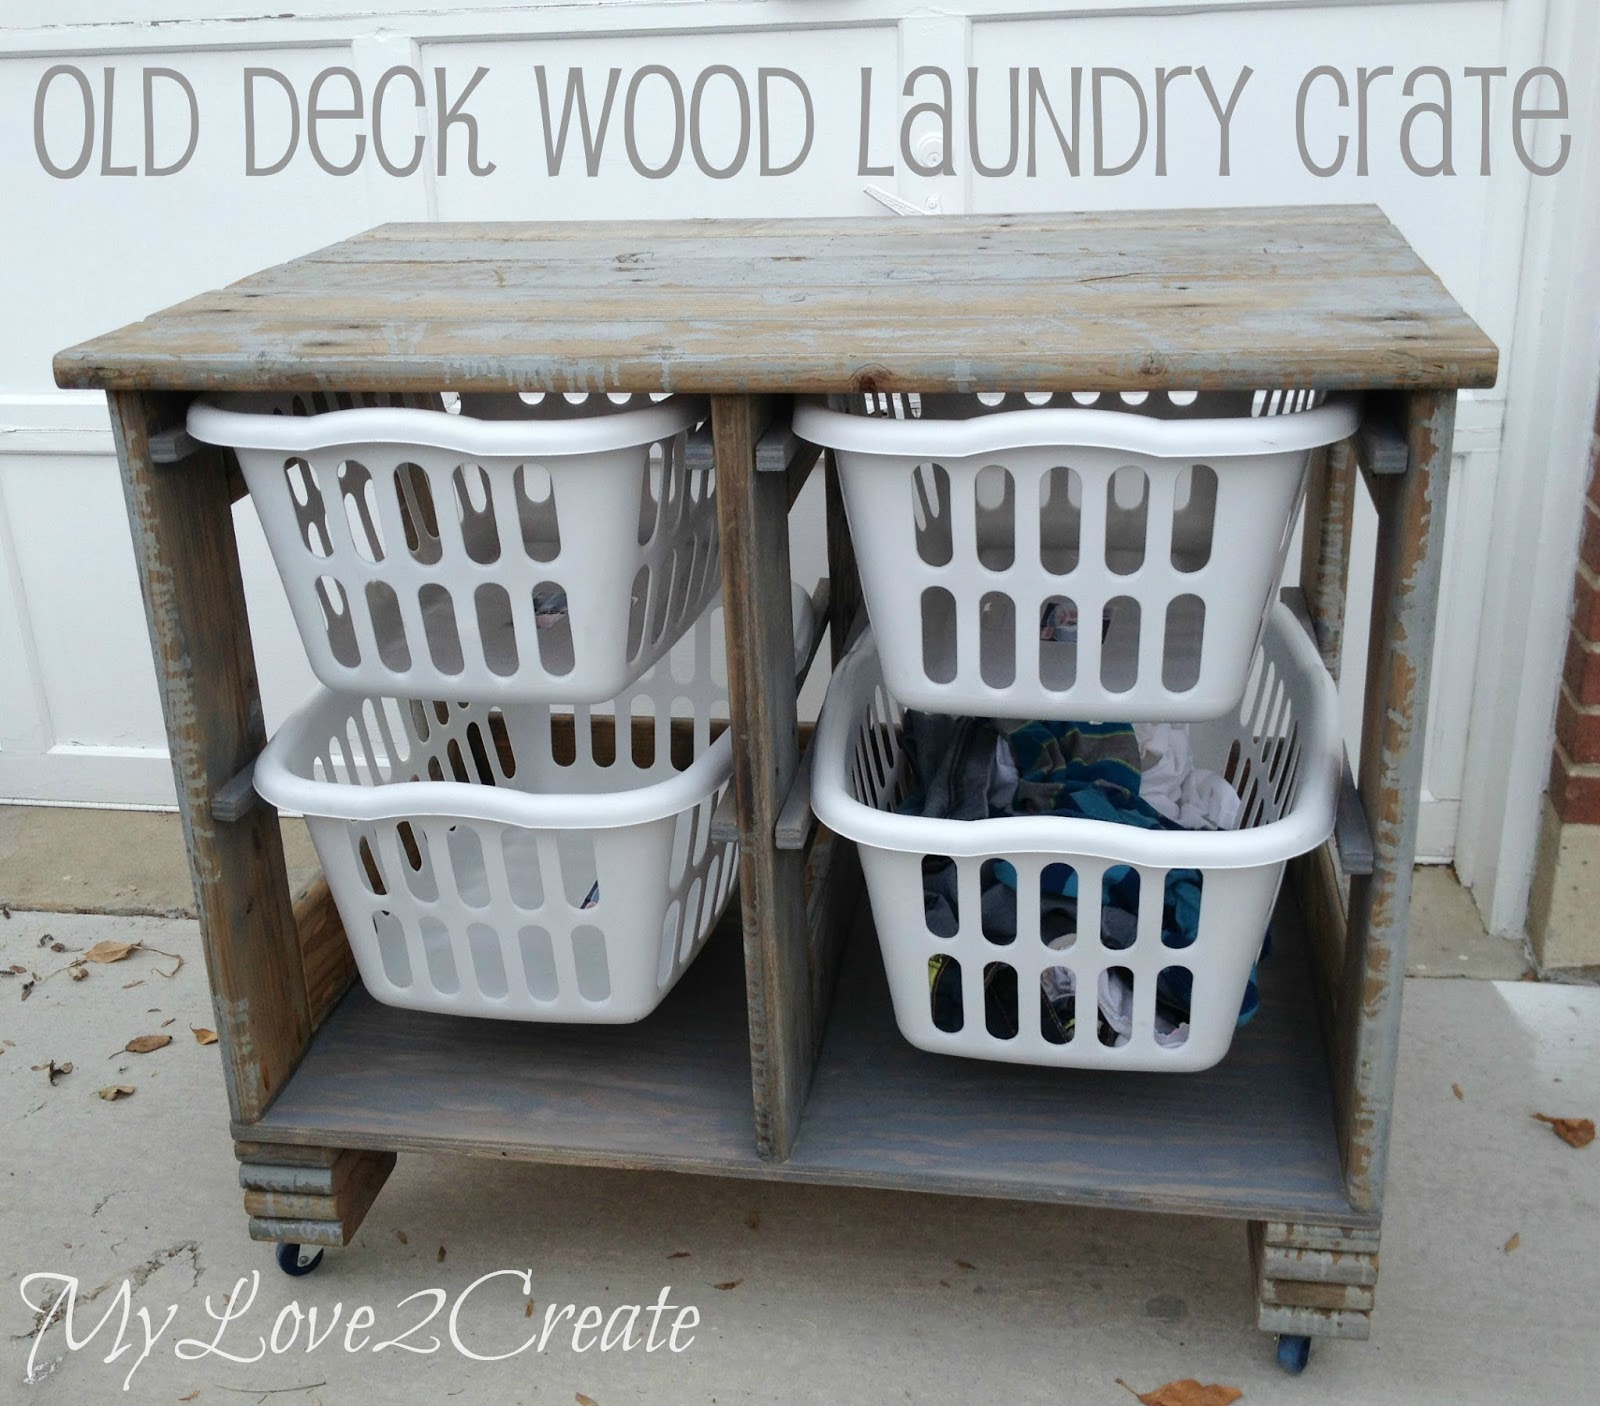 http://mylove2create.blogspot.ca/2014/04/old-deck-wood-laundry-crate.html